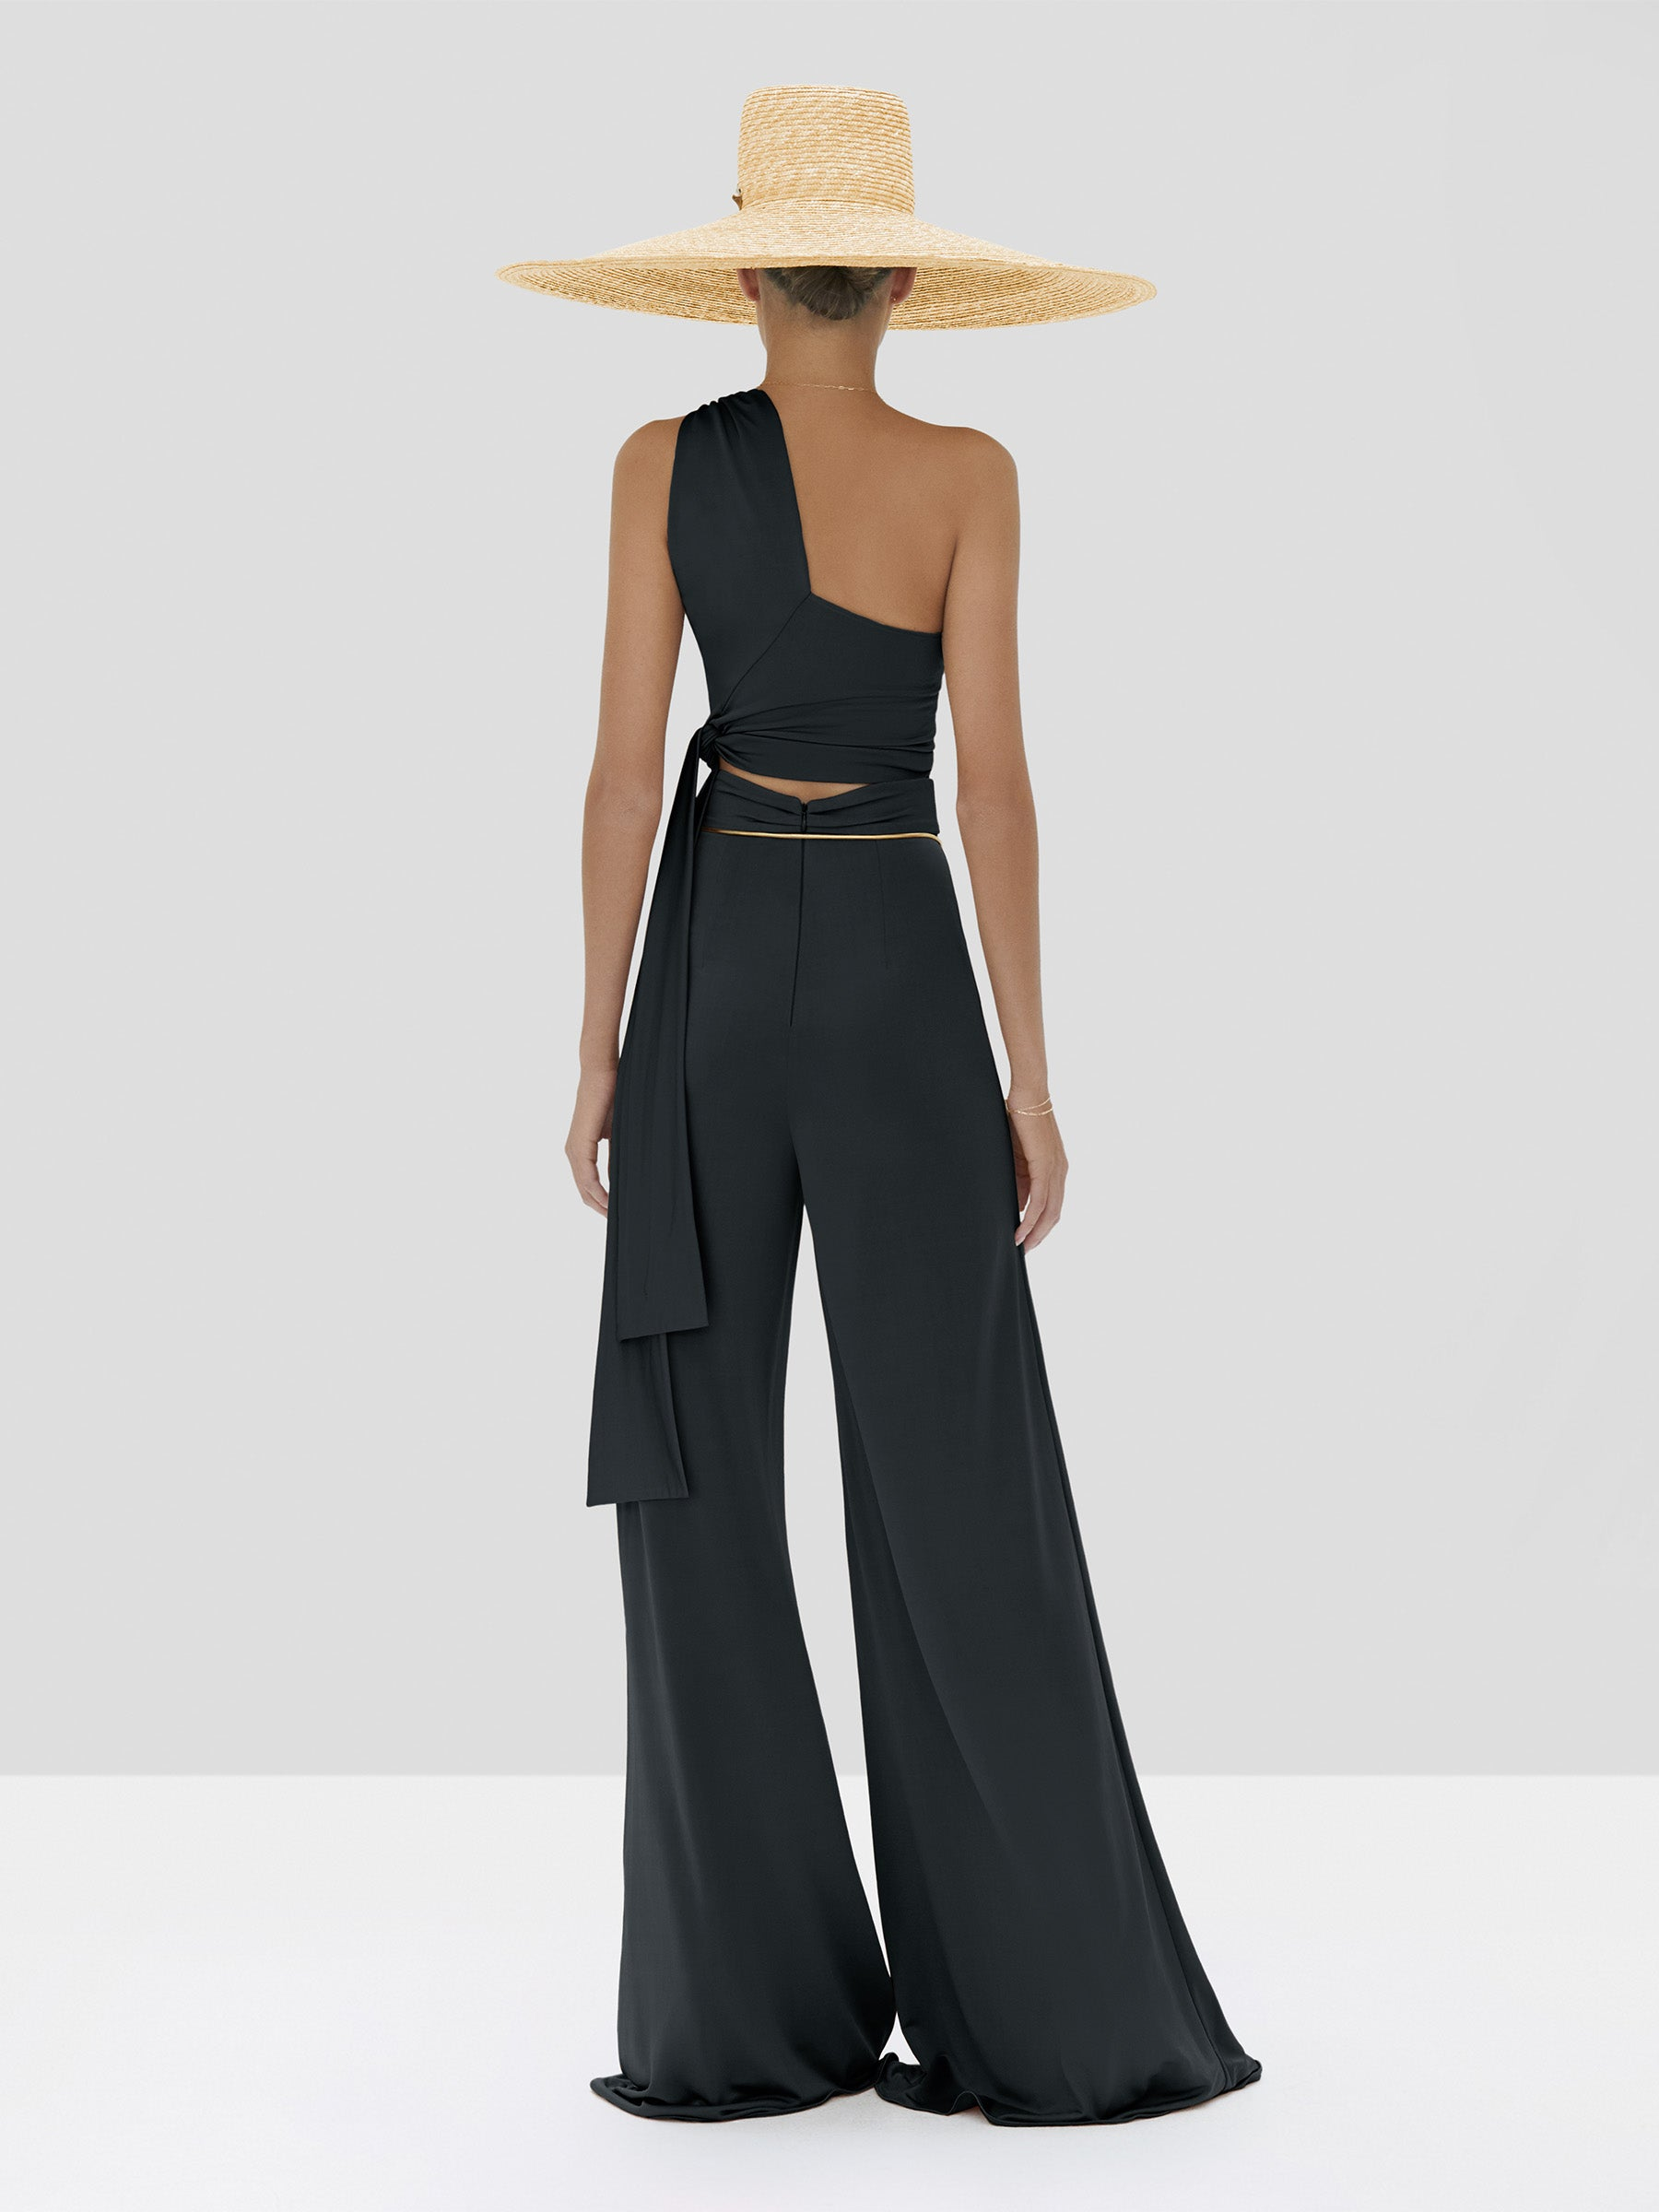 Alexis Gwen Top and Camilo Pant in Black from the Spring Summer 2020 Collection - Rear View